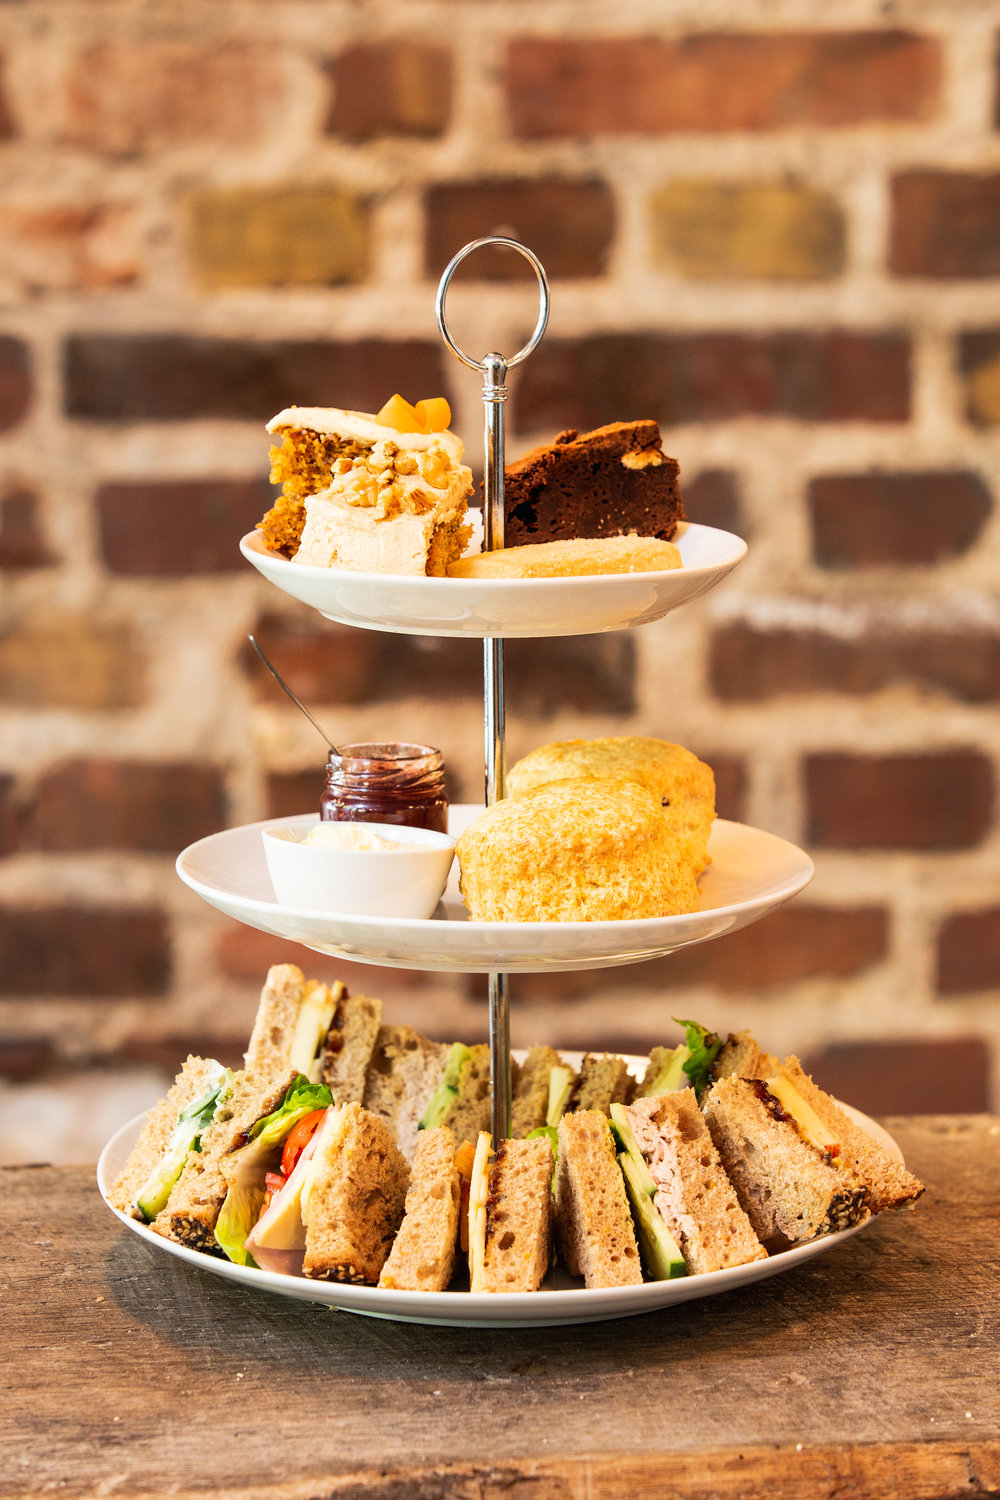 Call   or   email   to book an afternoon tea for two and enjoy our home-made sandwiches, scones and cakes in the heart of Cologne-Nippes.